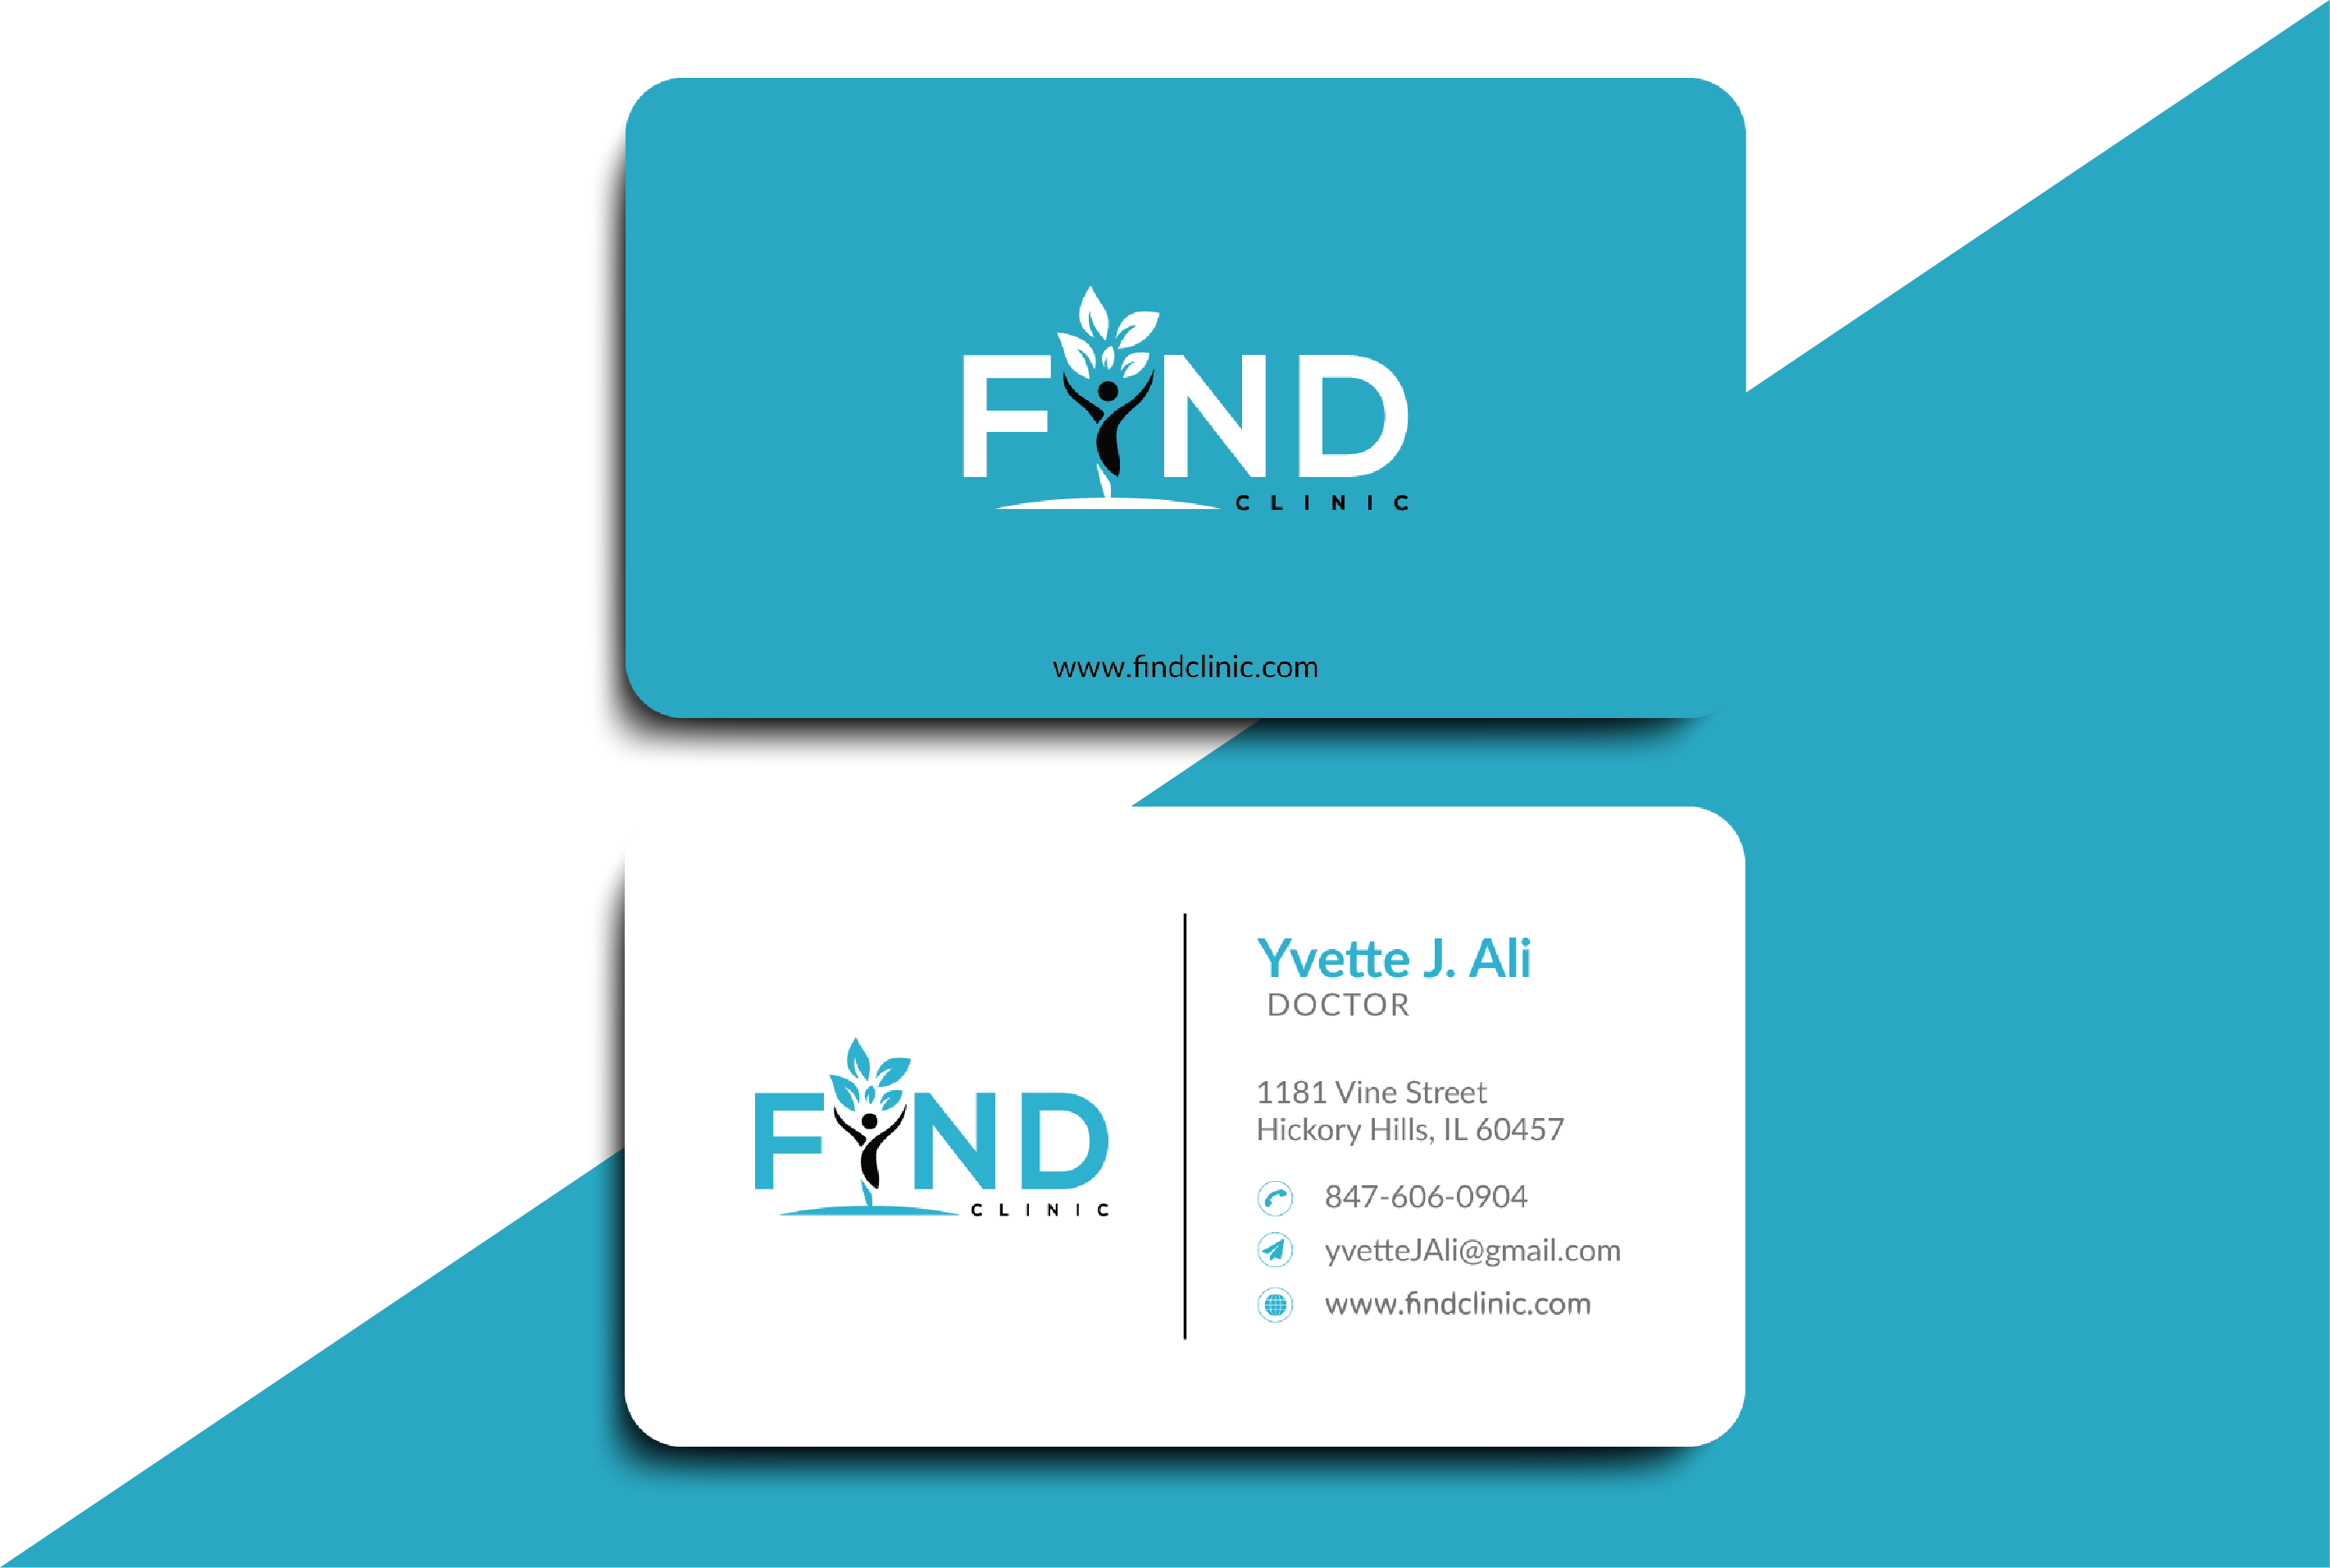 I will create modern business card design within 6 hours